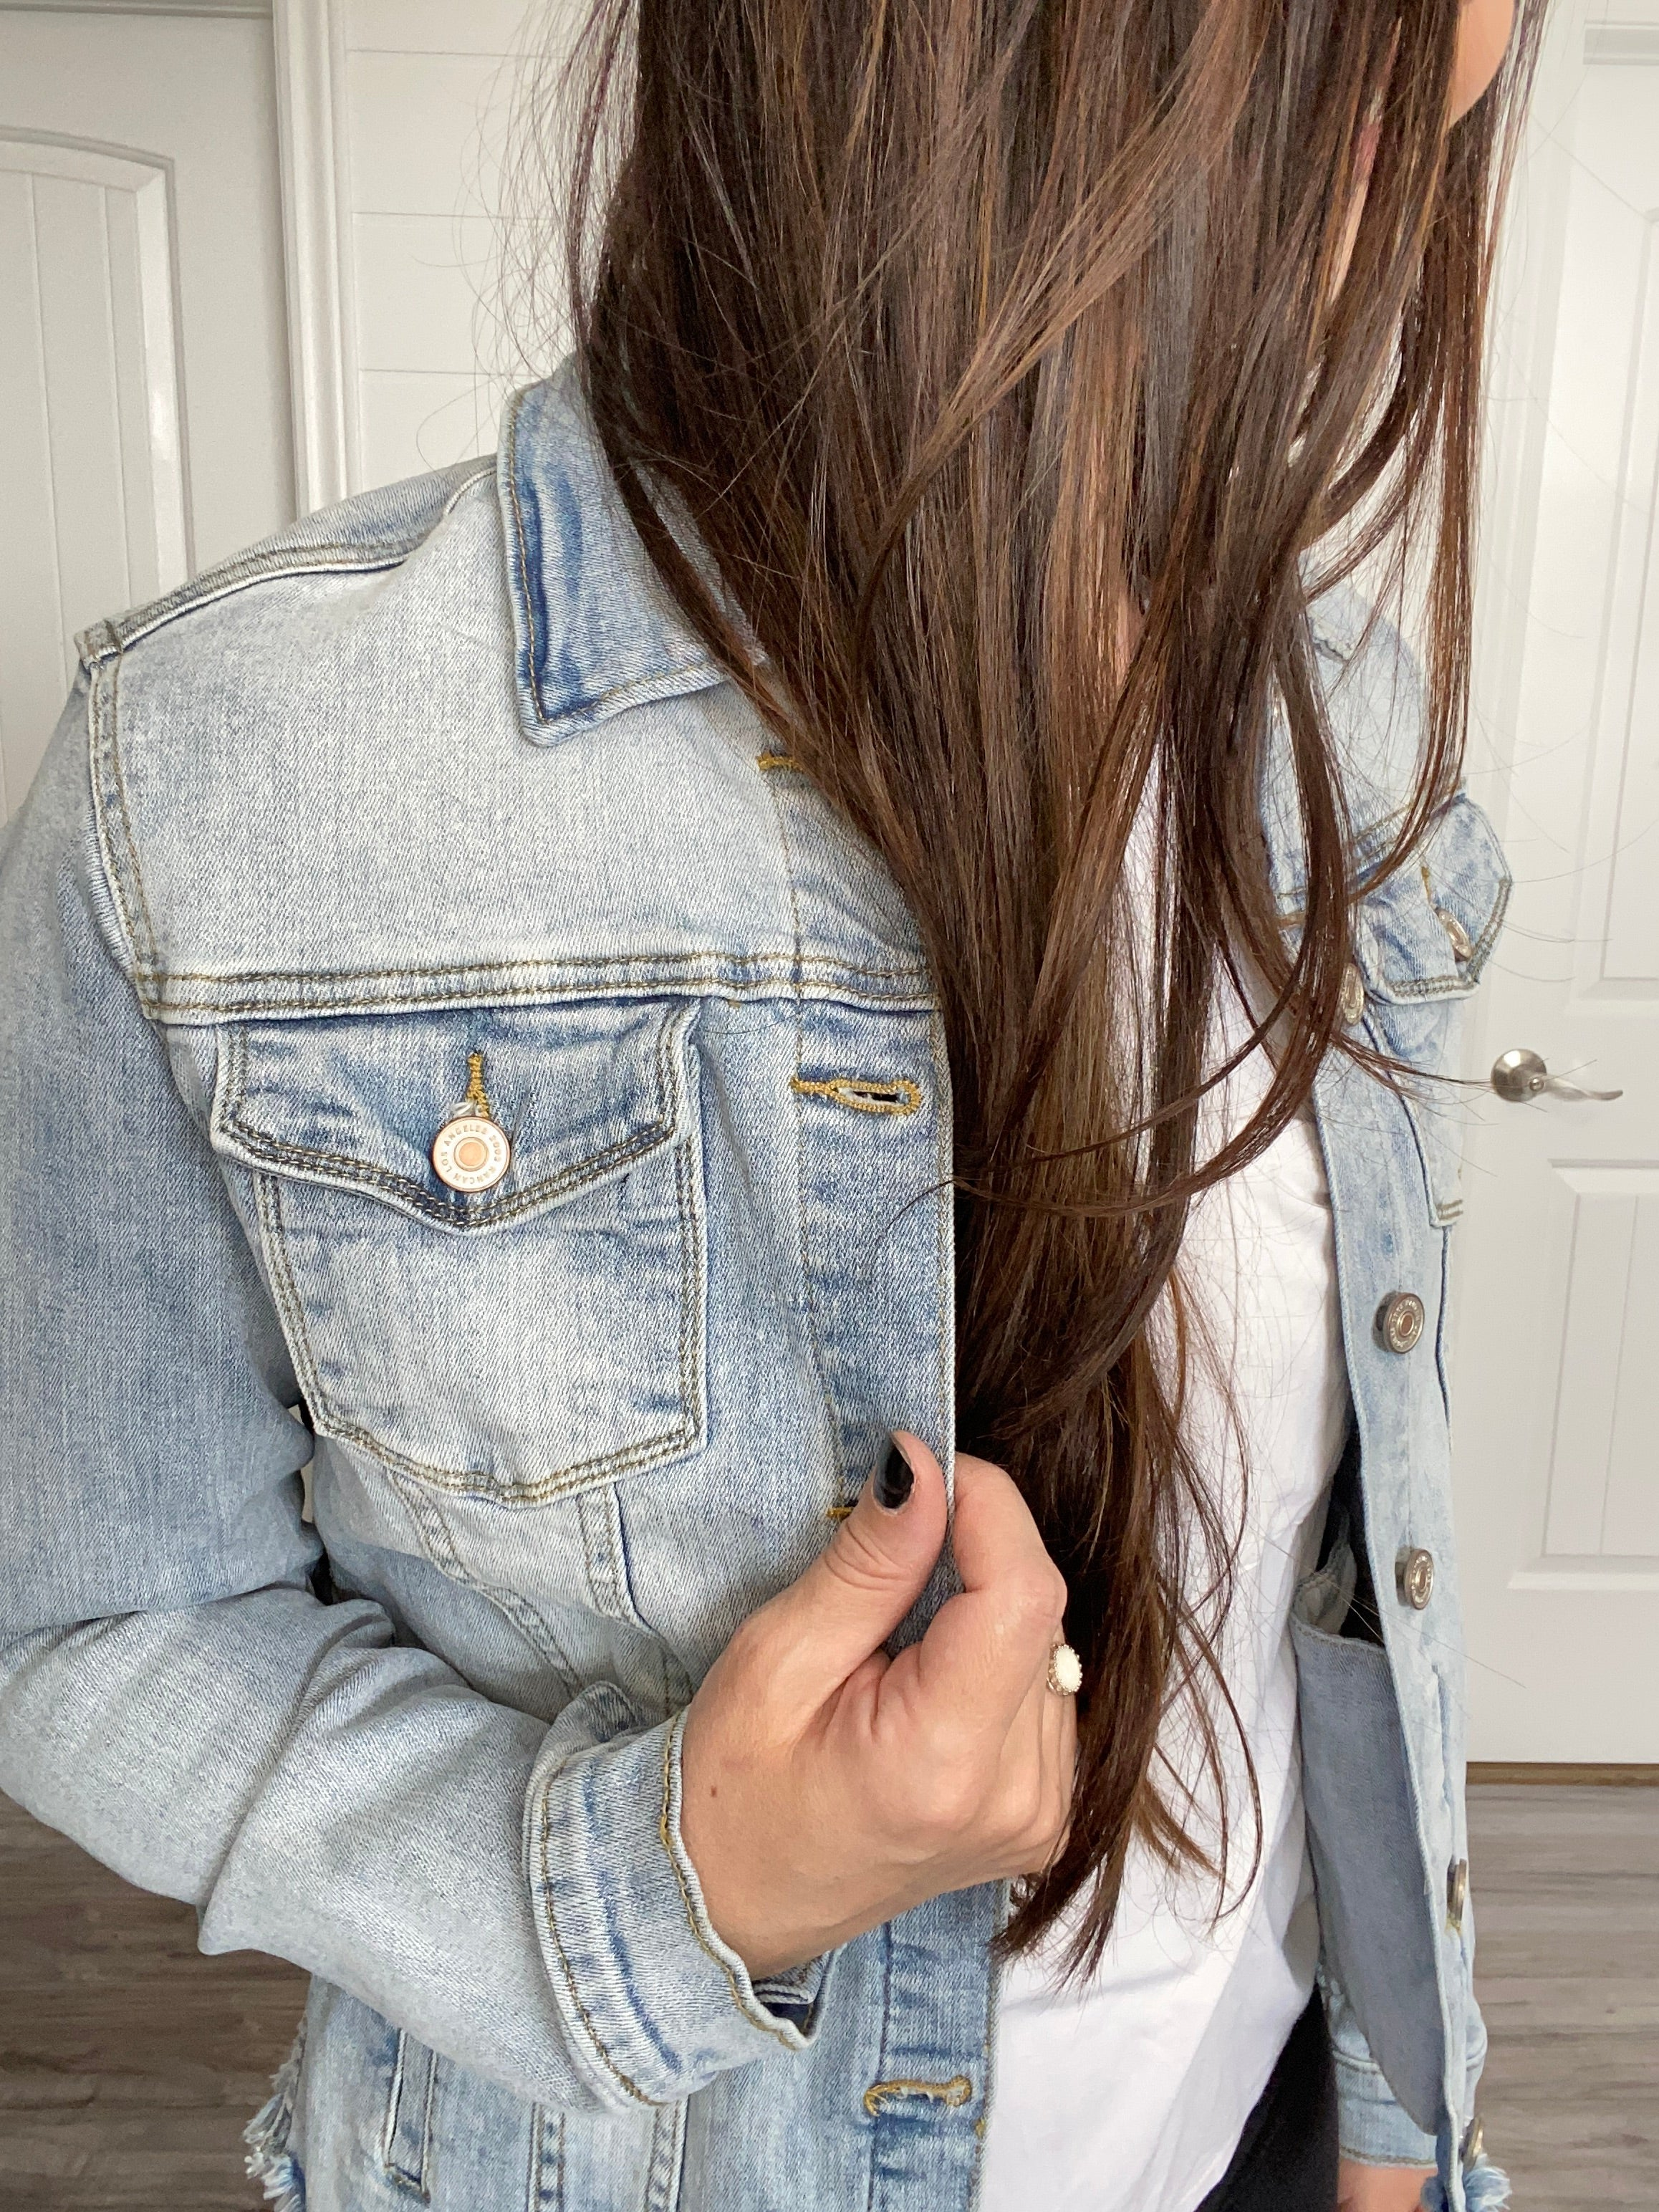 The Kancan Jean jacket